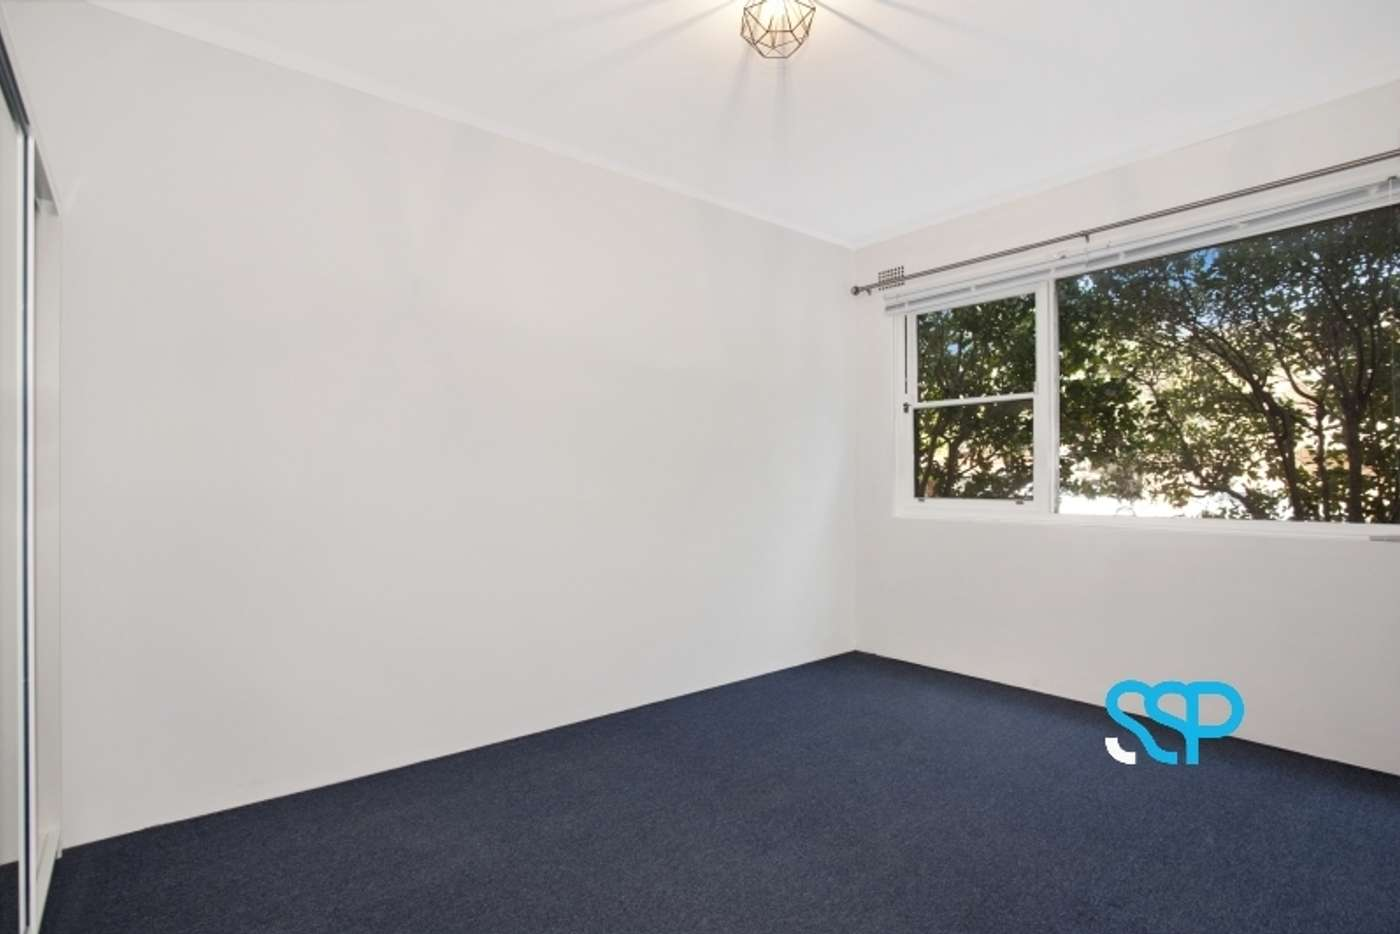 Fifth view of Homely apartment listing, 9 Burke Road, Cronulla NSW 2230